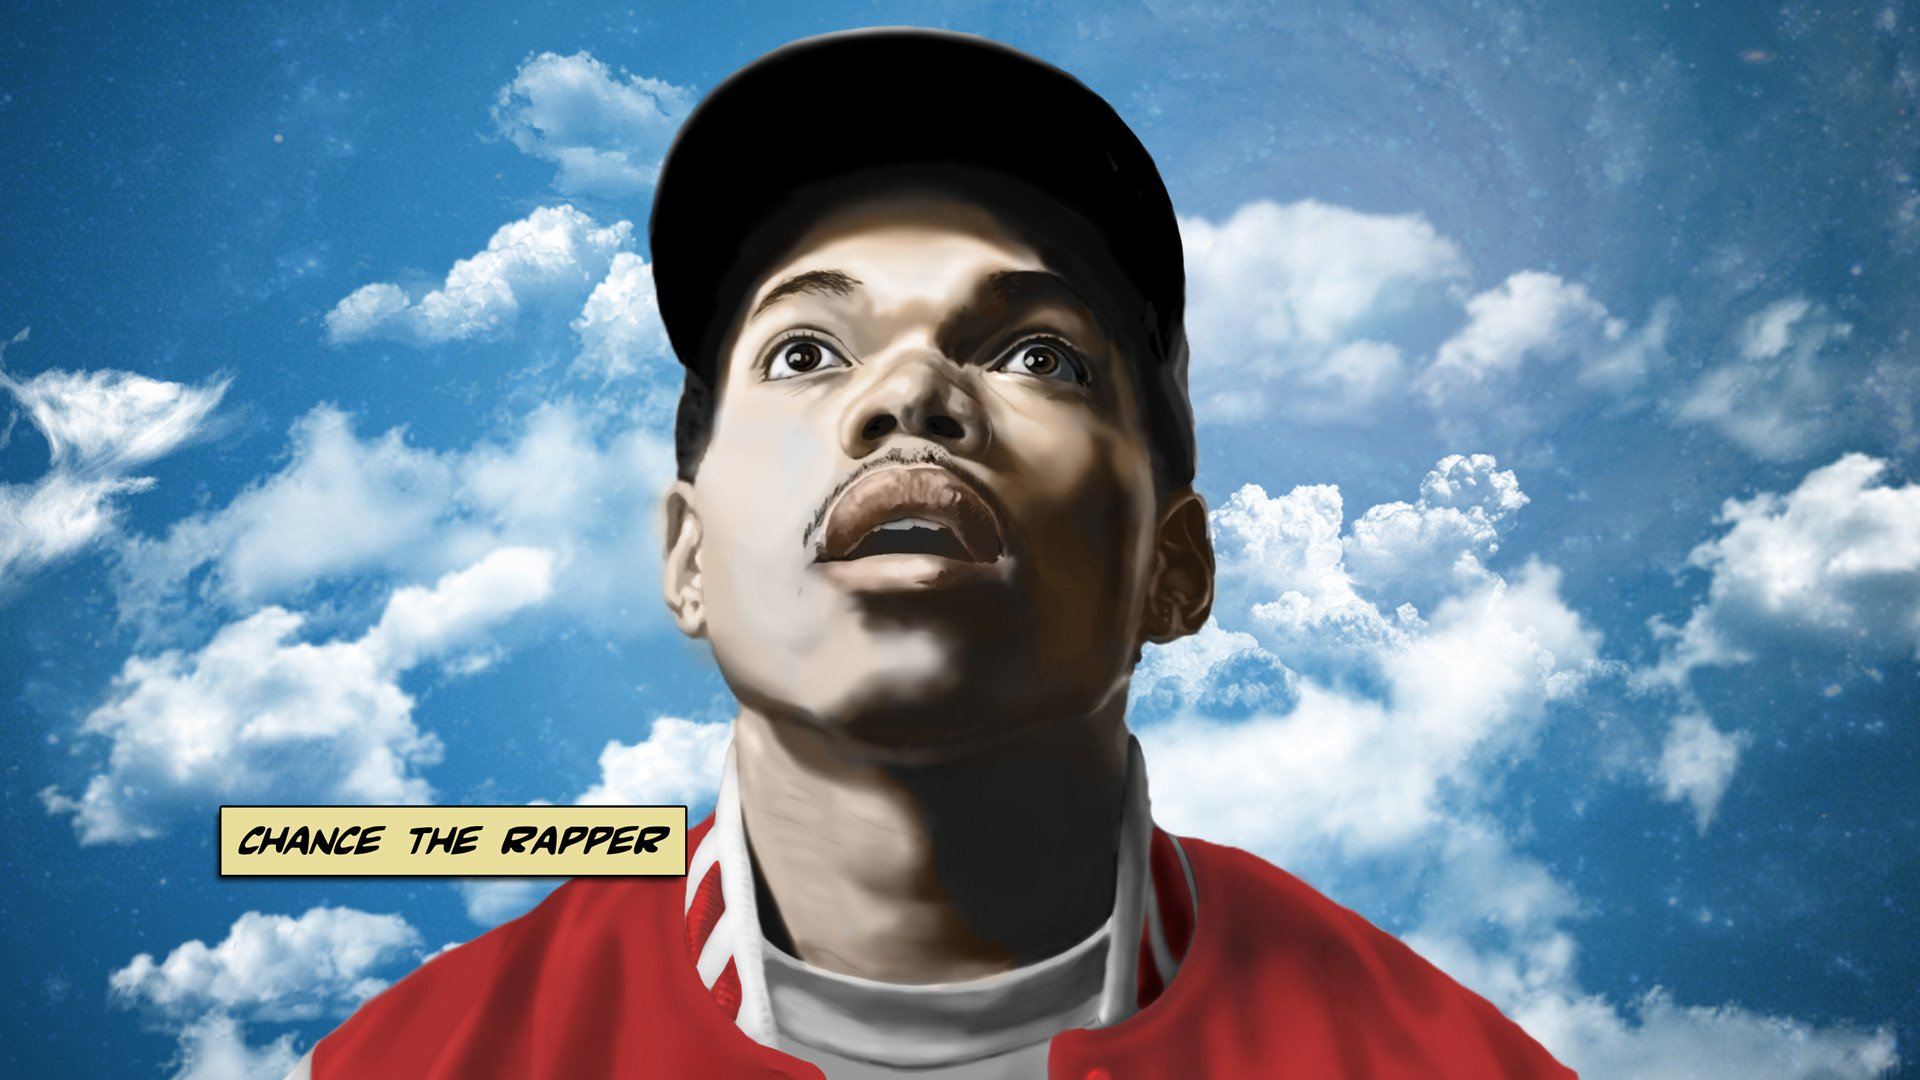 Chance The Rapper Iphone Wallpaper Chance The Rapper Hd Wallpaper Background Image